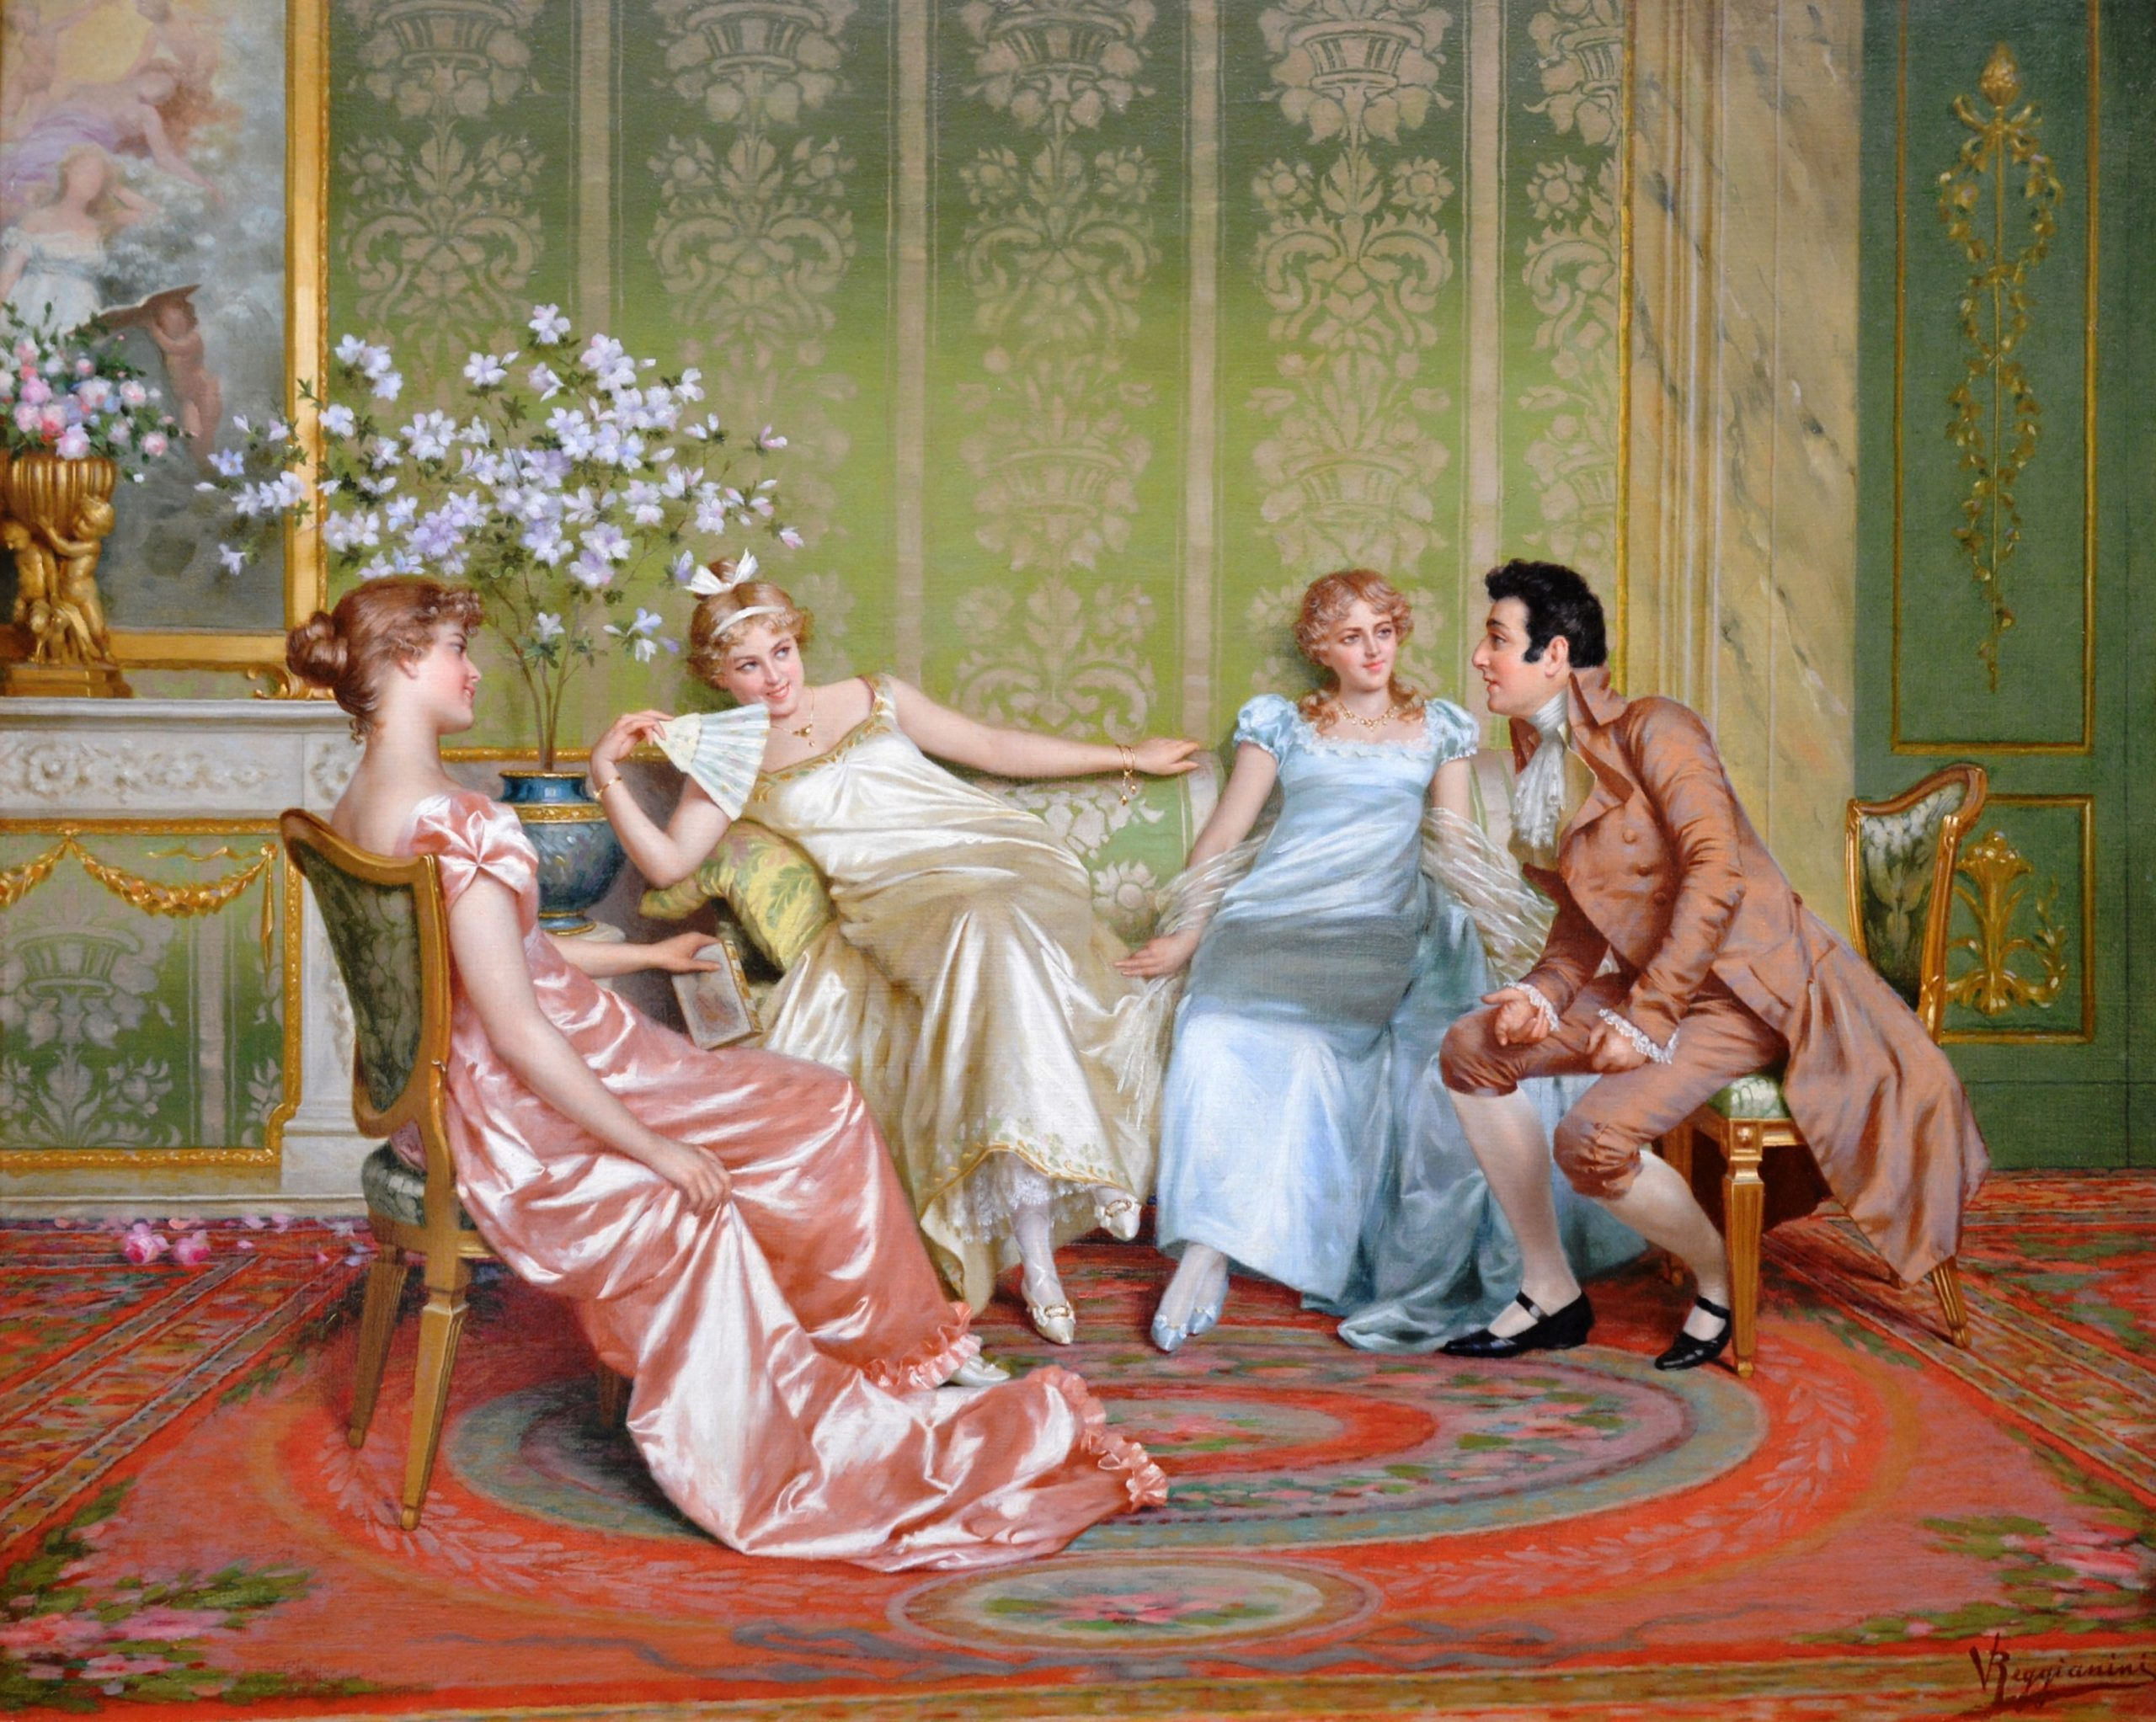 Casanova - Rococo Scene of Young Paris Beauties & Lothario Image